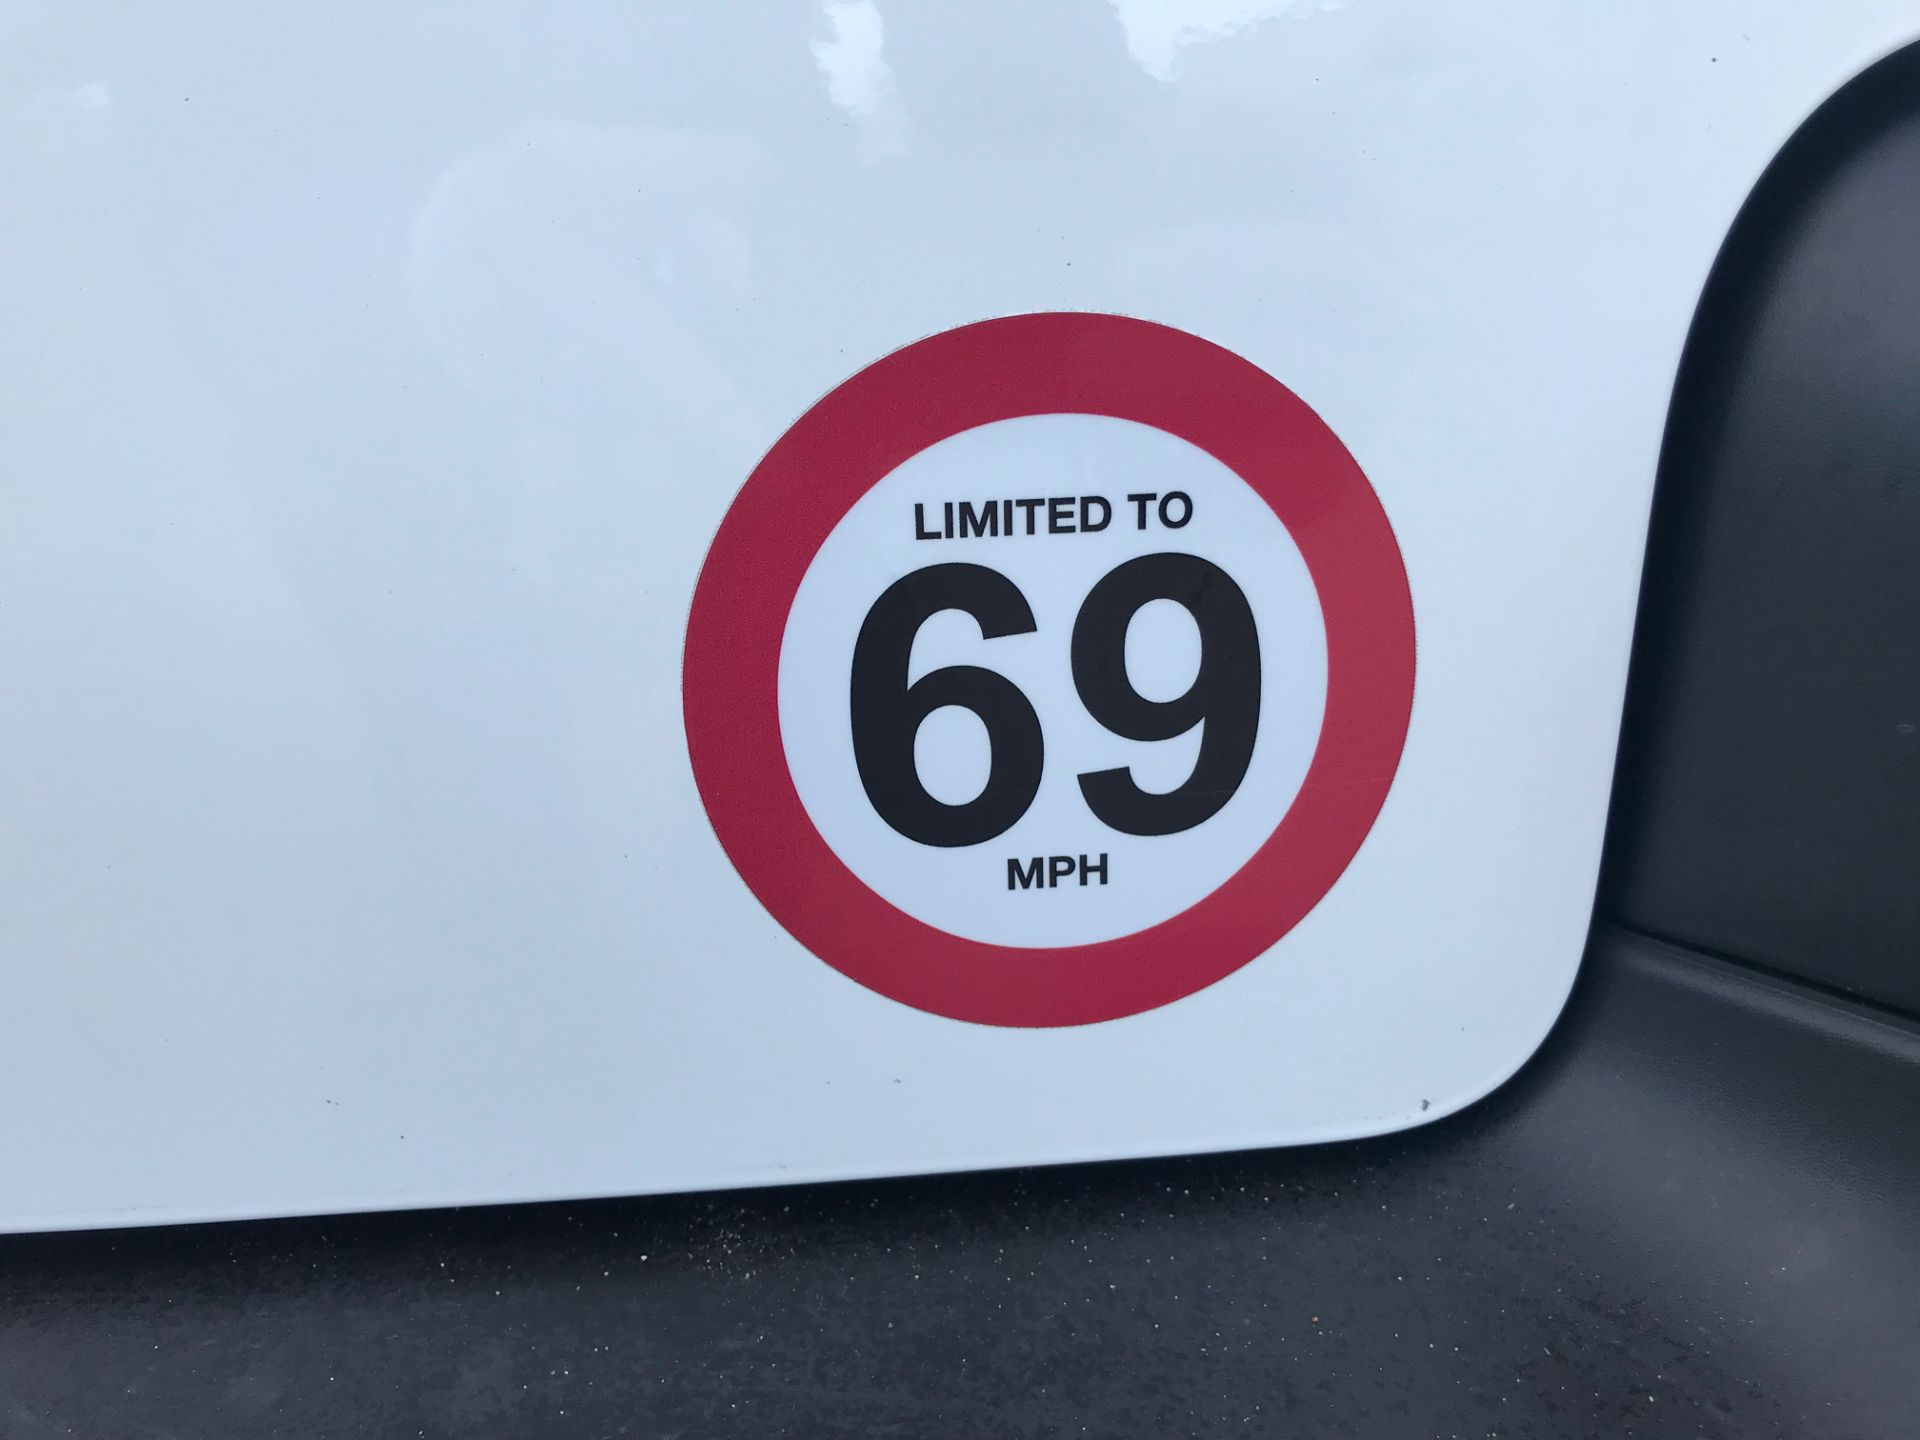 2018 Peugeot Partner 850 1.6 Bluehdi 100 Professional Van [Non Ss]*Restricted to 69MPH* (NV18PXR) Image 52